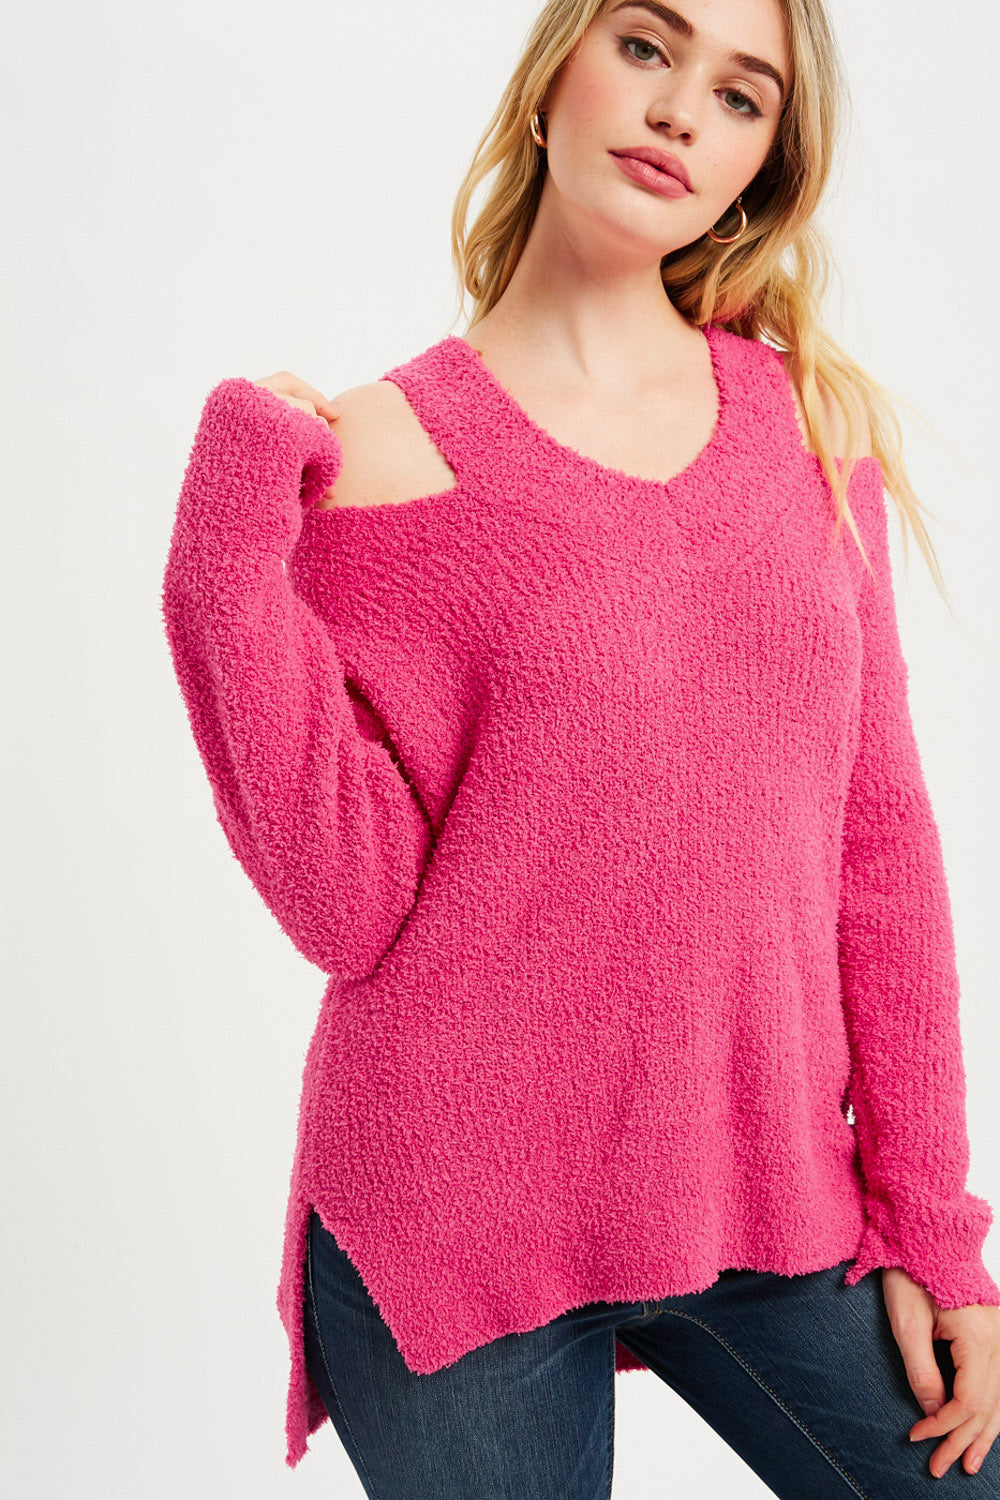 Soft Feel V-Neck Cutout Pullover - Hot Pink